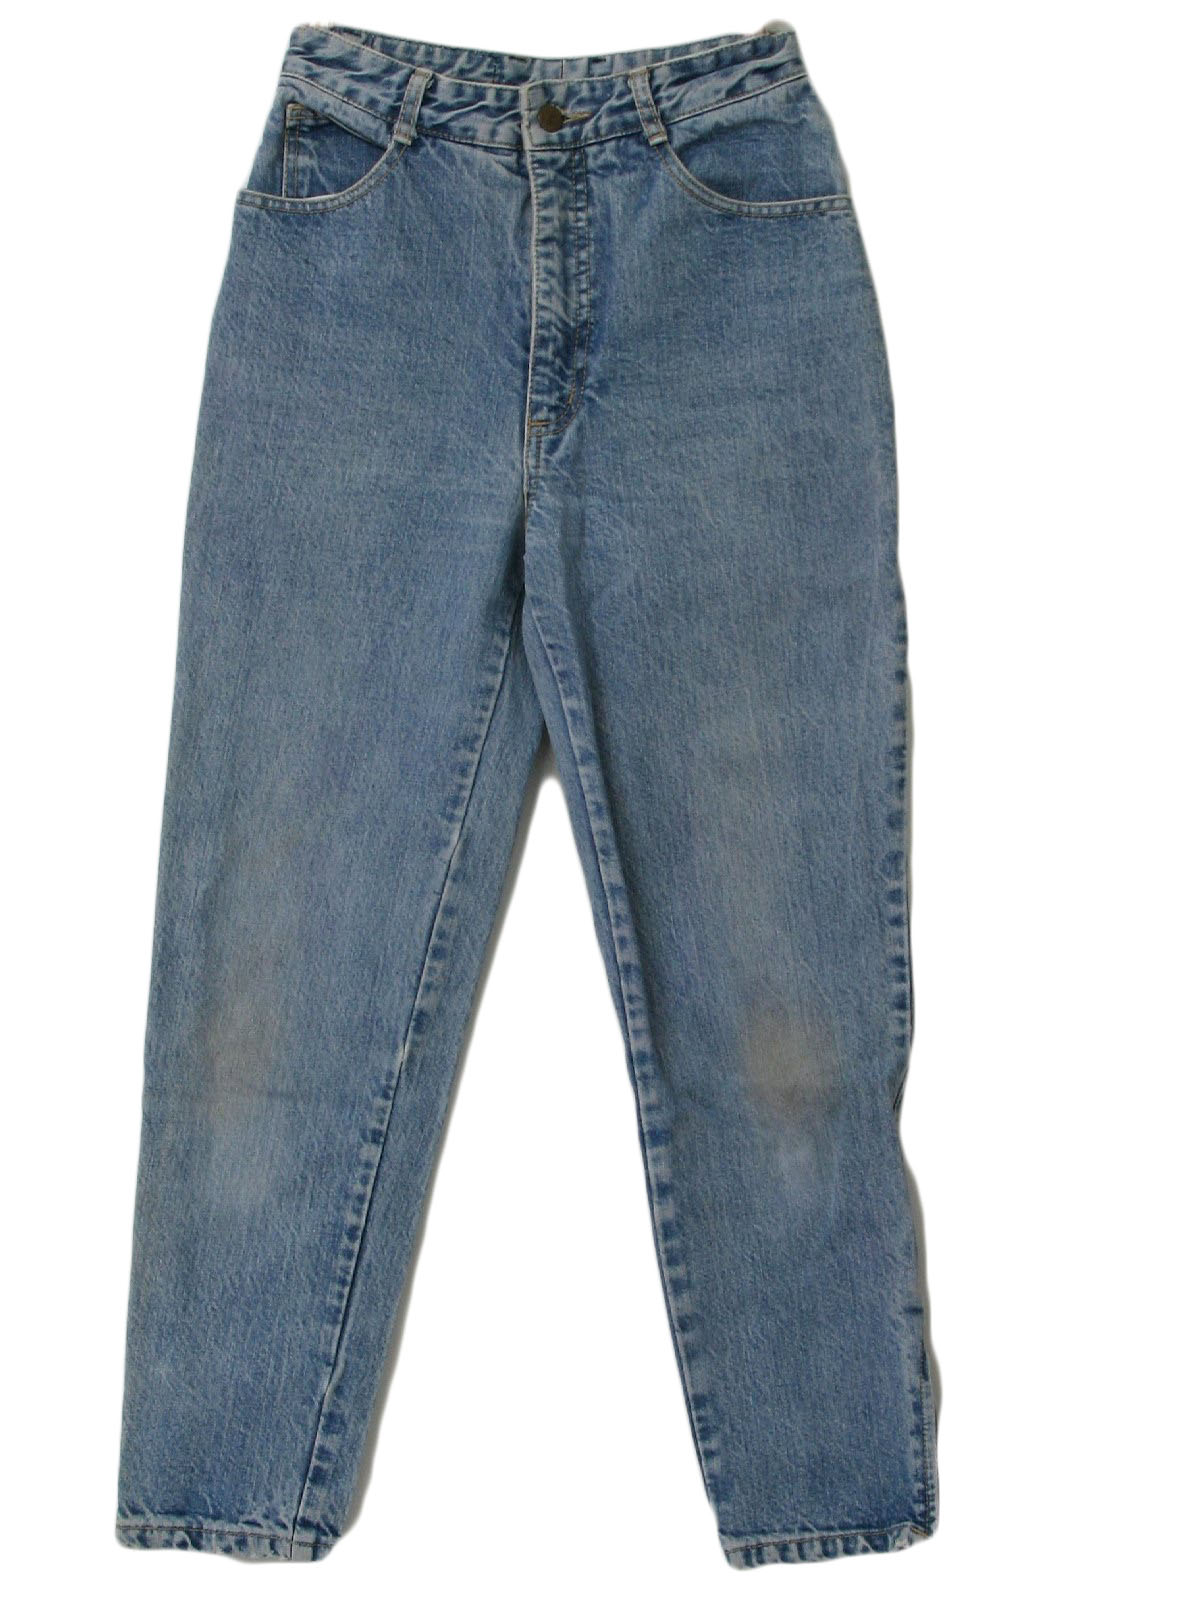 Jeans Of The 90s   www.imgkid.com - The Image Kid Has It!